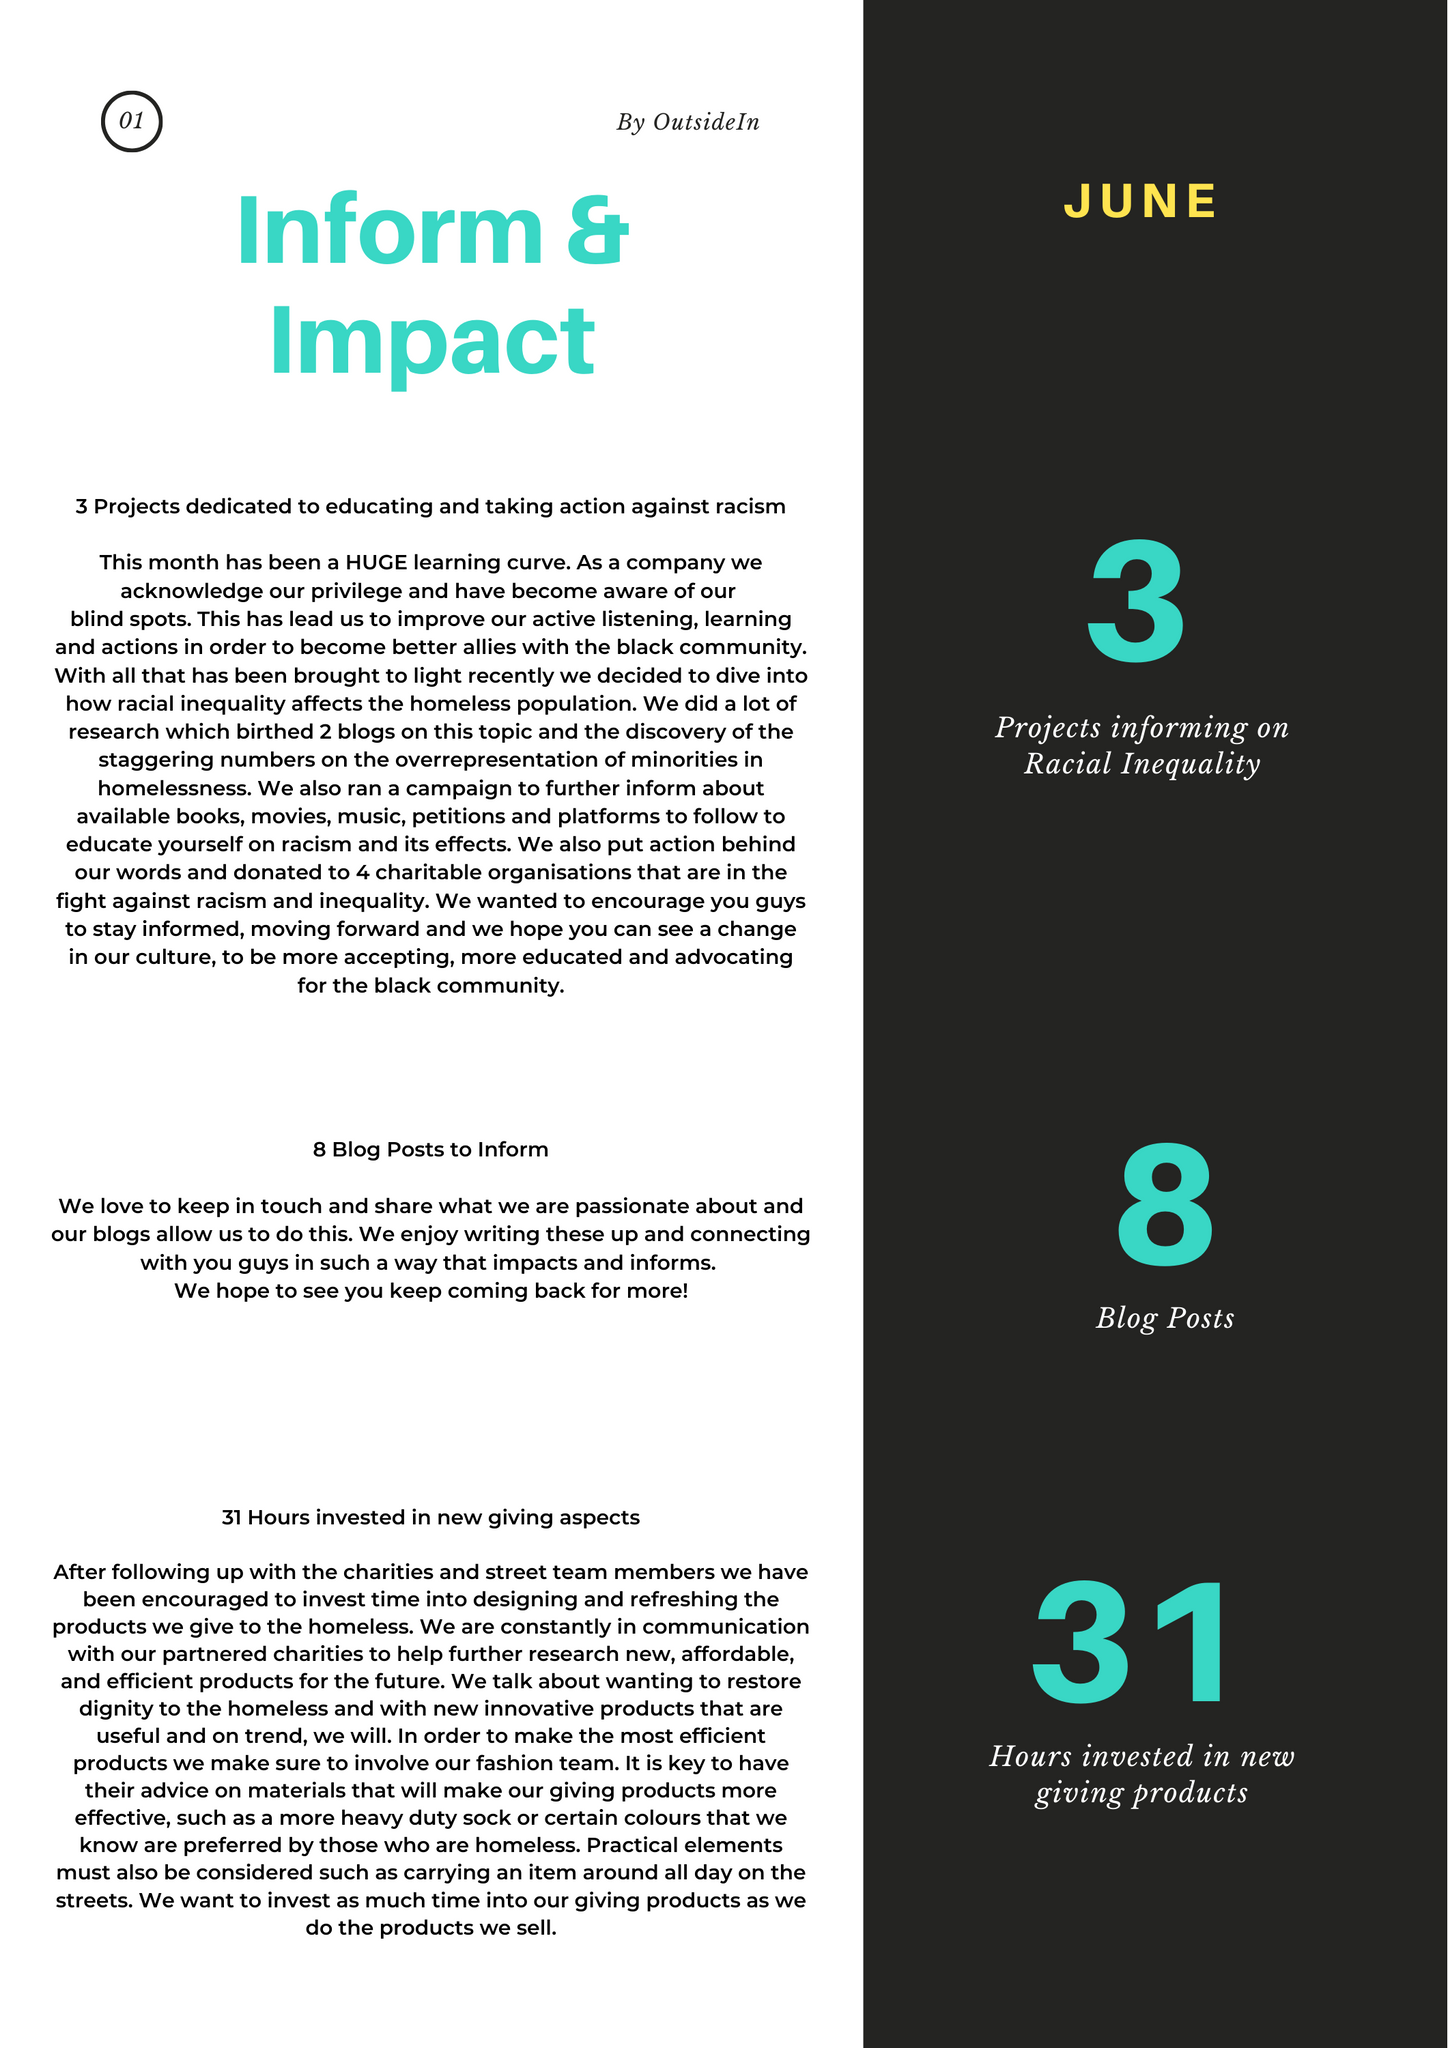 social impact report OutsideIn wear one share one june